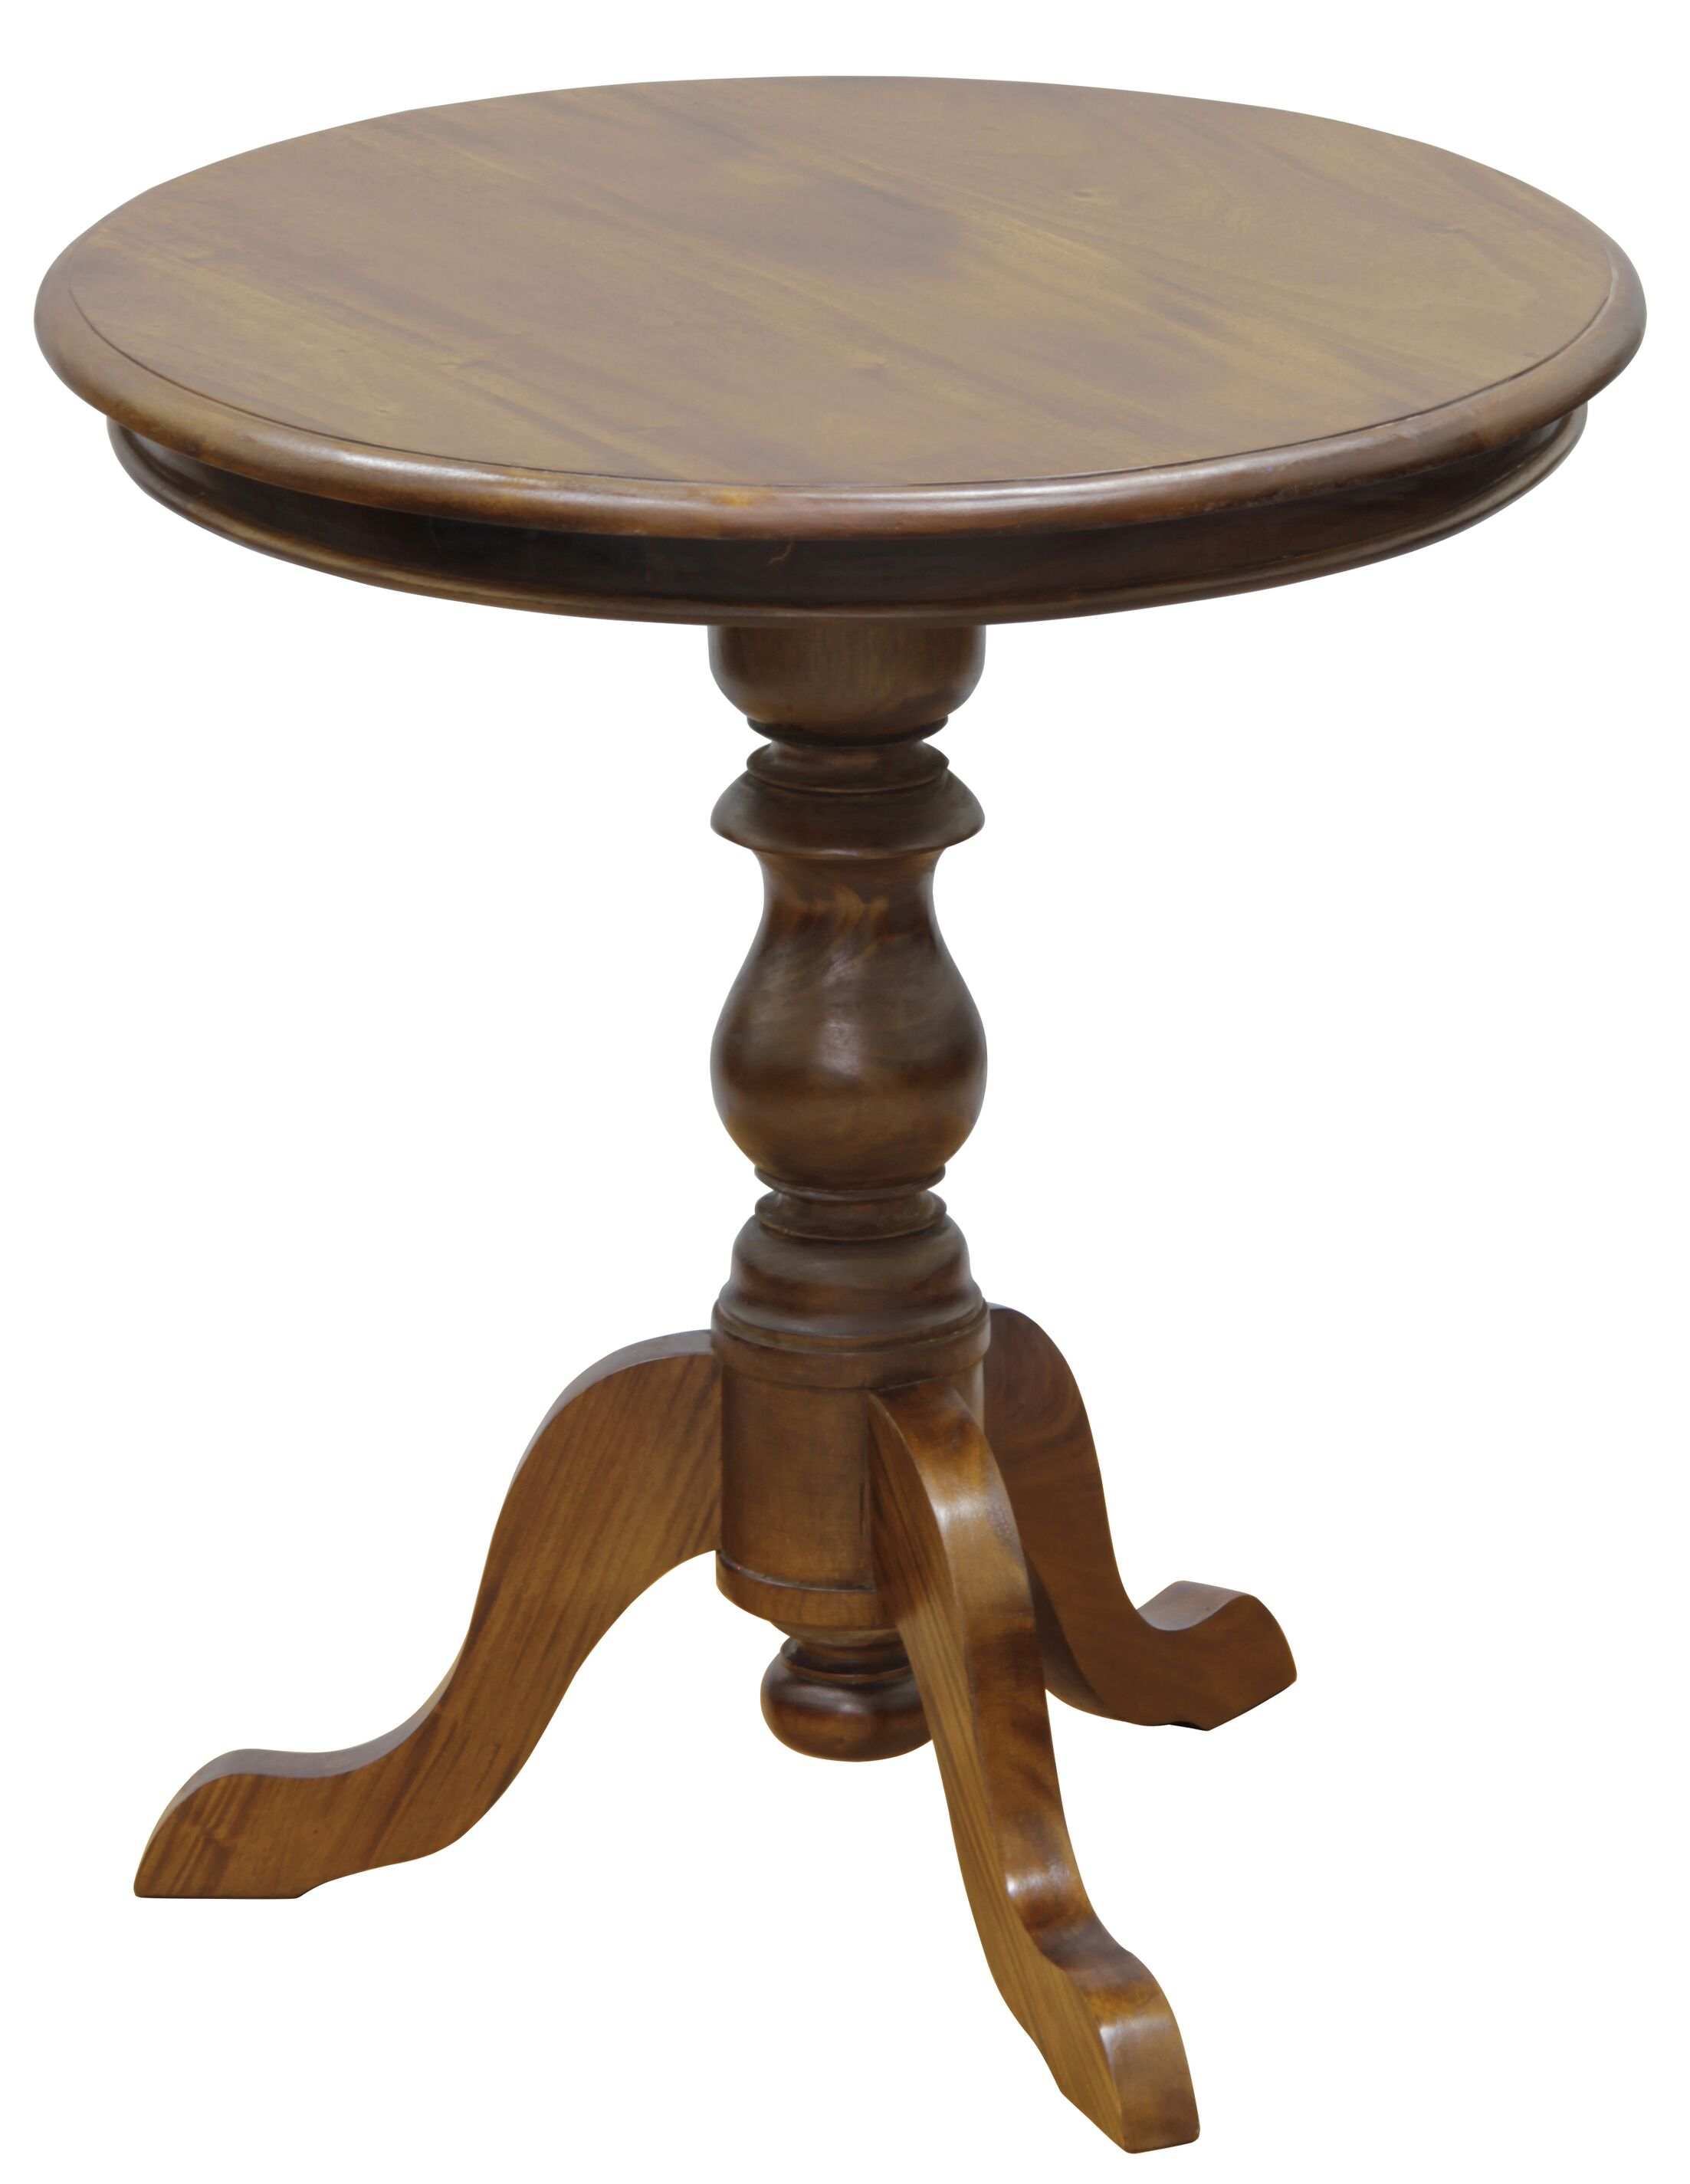 Isabelle Fine Handcrafted Solid Mahogany Wood End Table